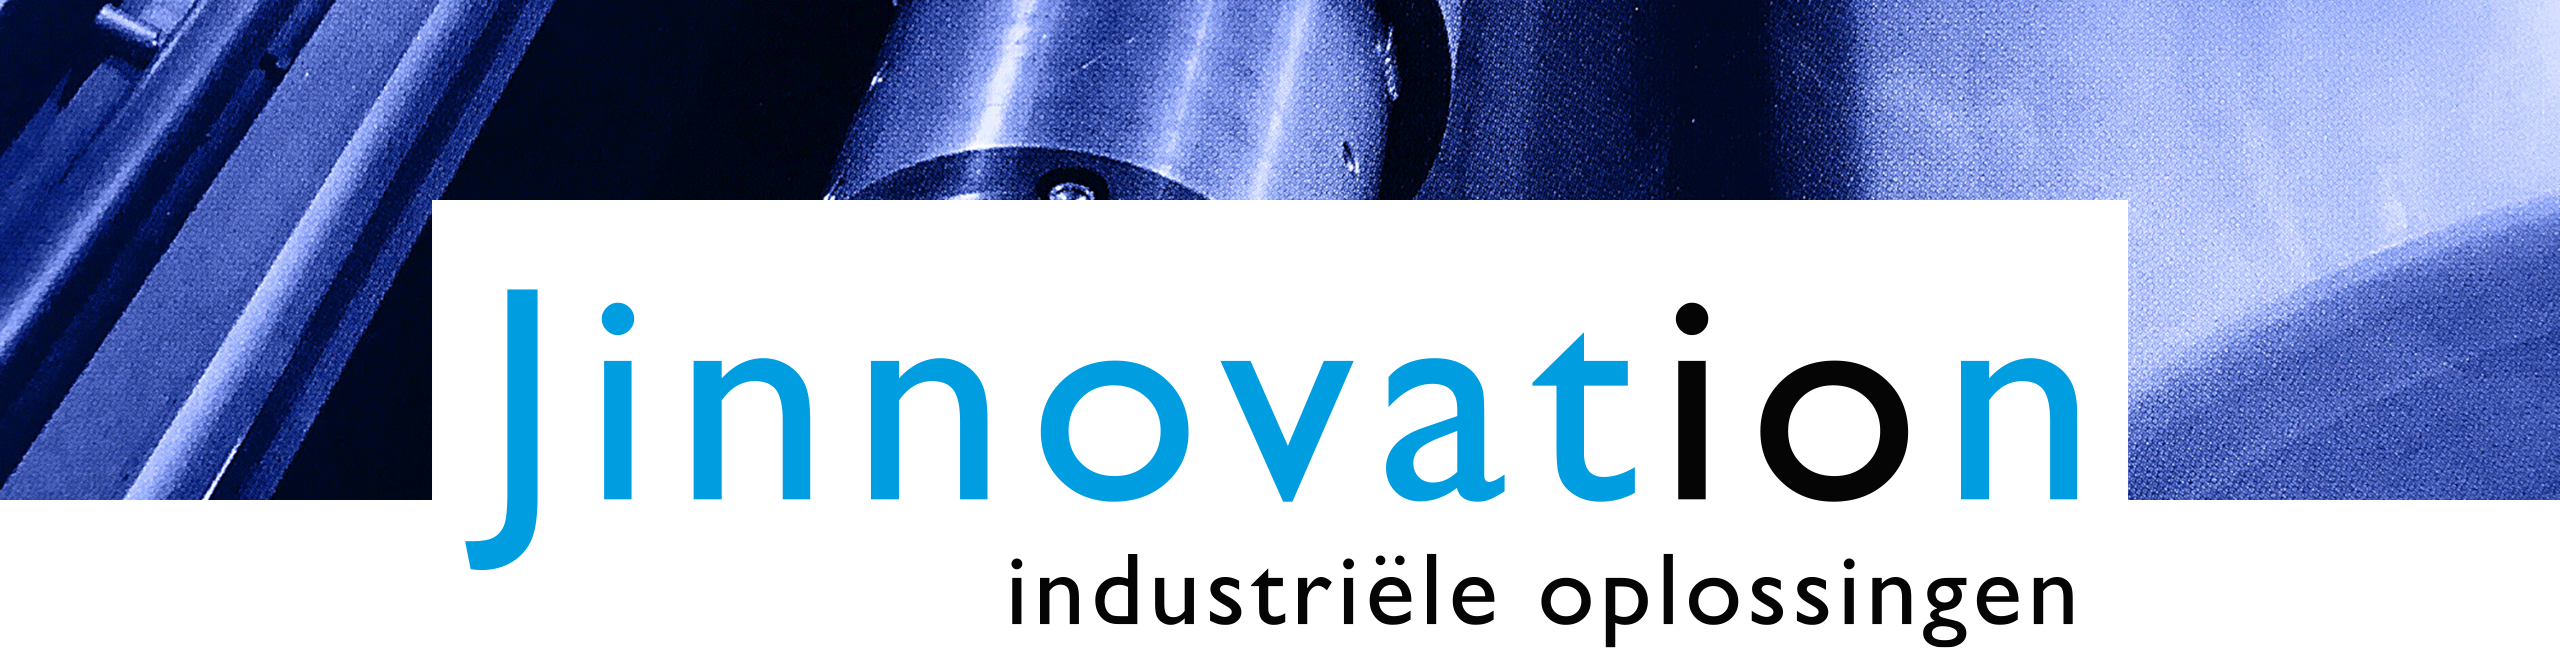 Jinnovation reinigingssystemen